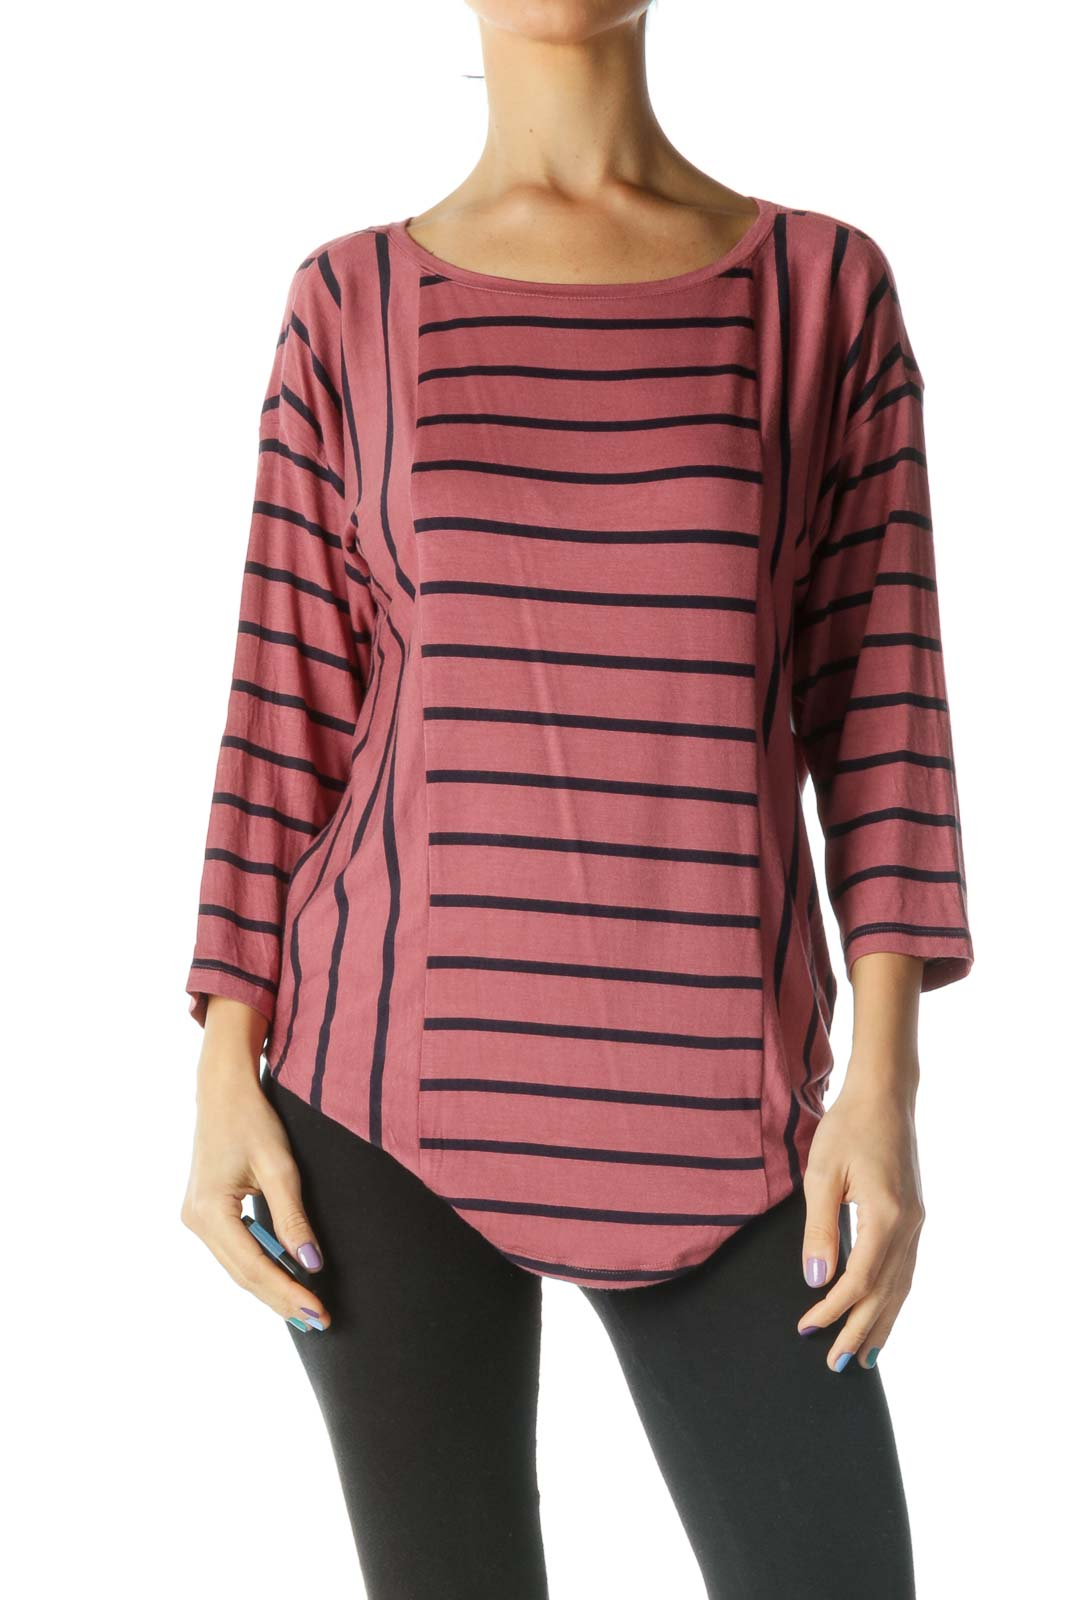 Red and Black Striped Round Neck Knit Top